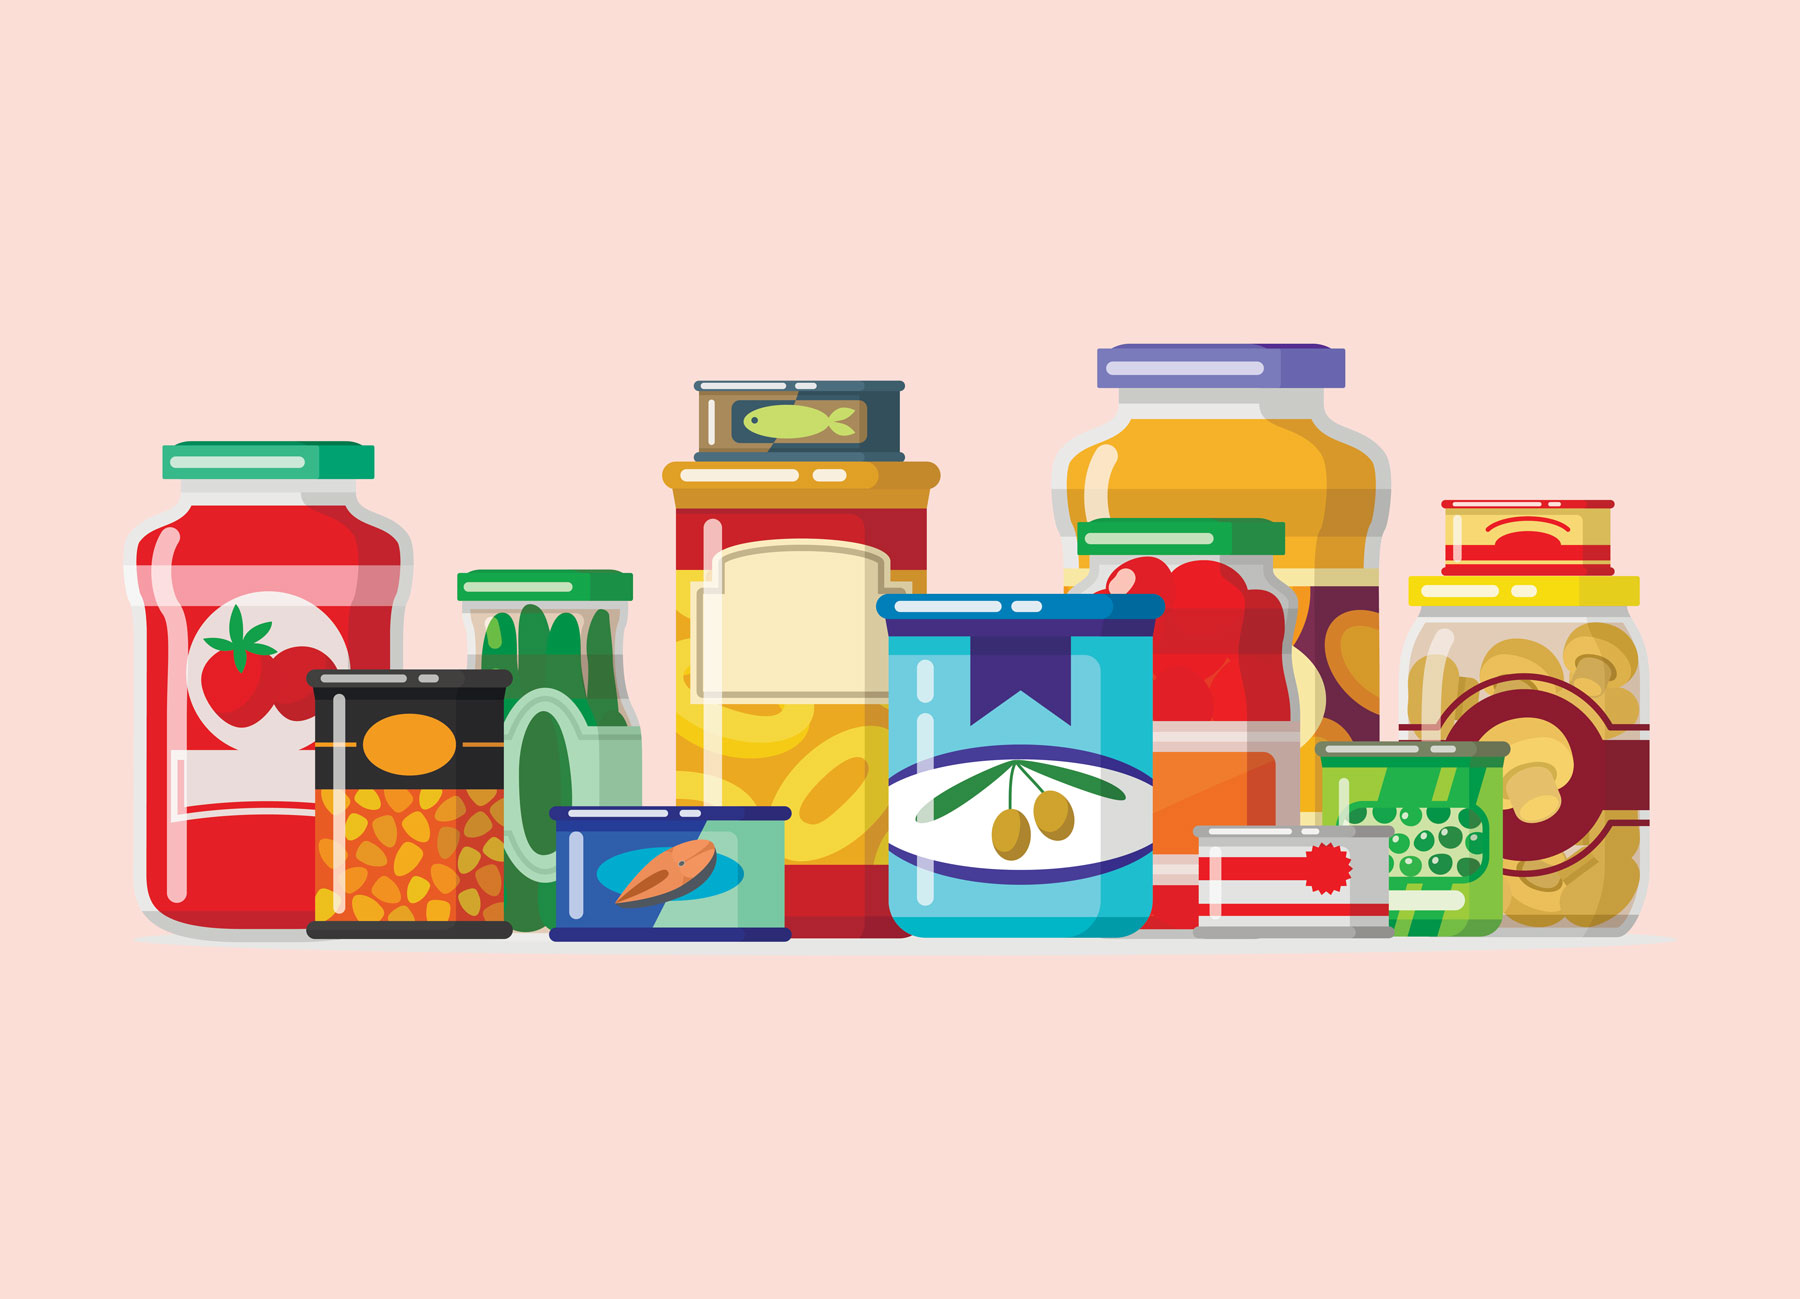 Non-perishable food: Best non-perishable emergency food to stockpile for a natural disaster, epidemic, or coronavirus pandemic